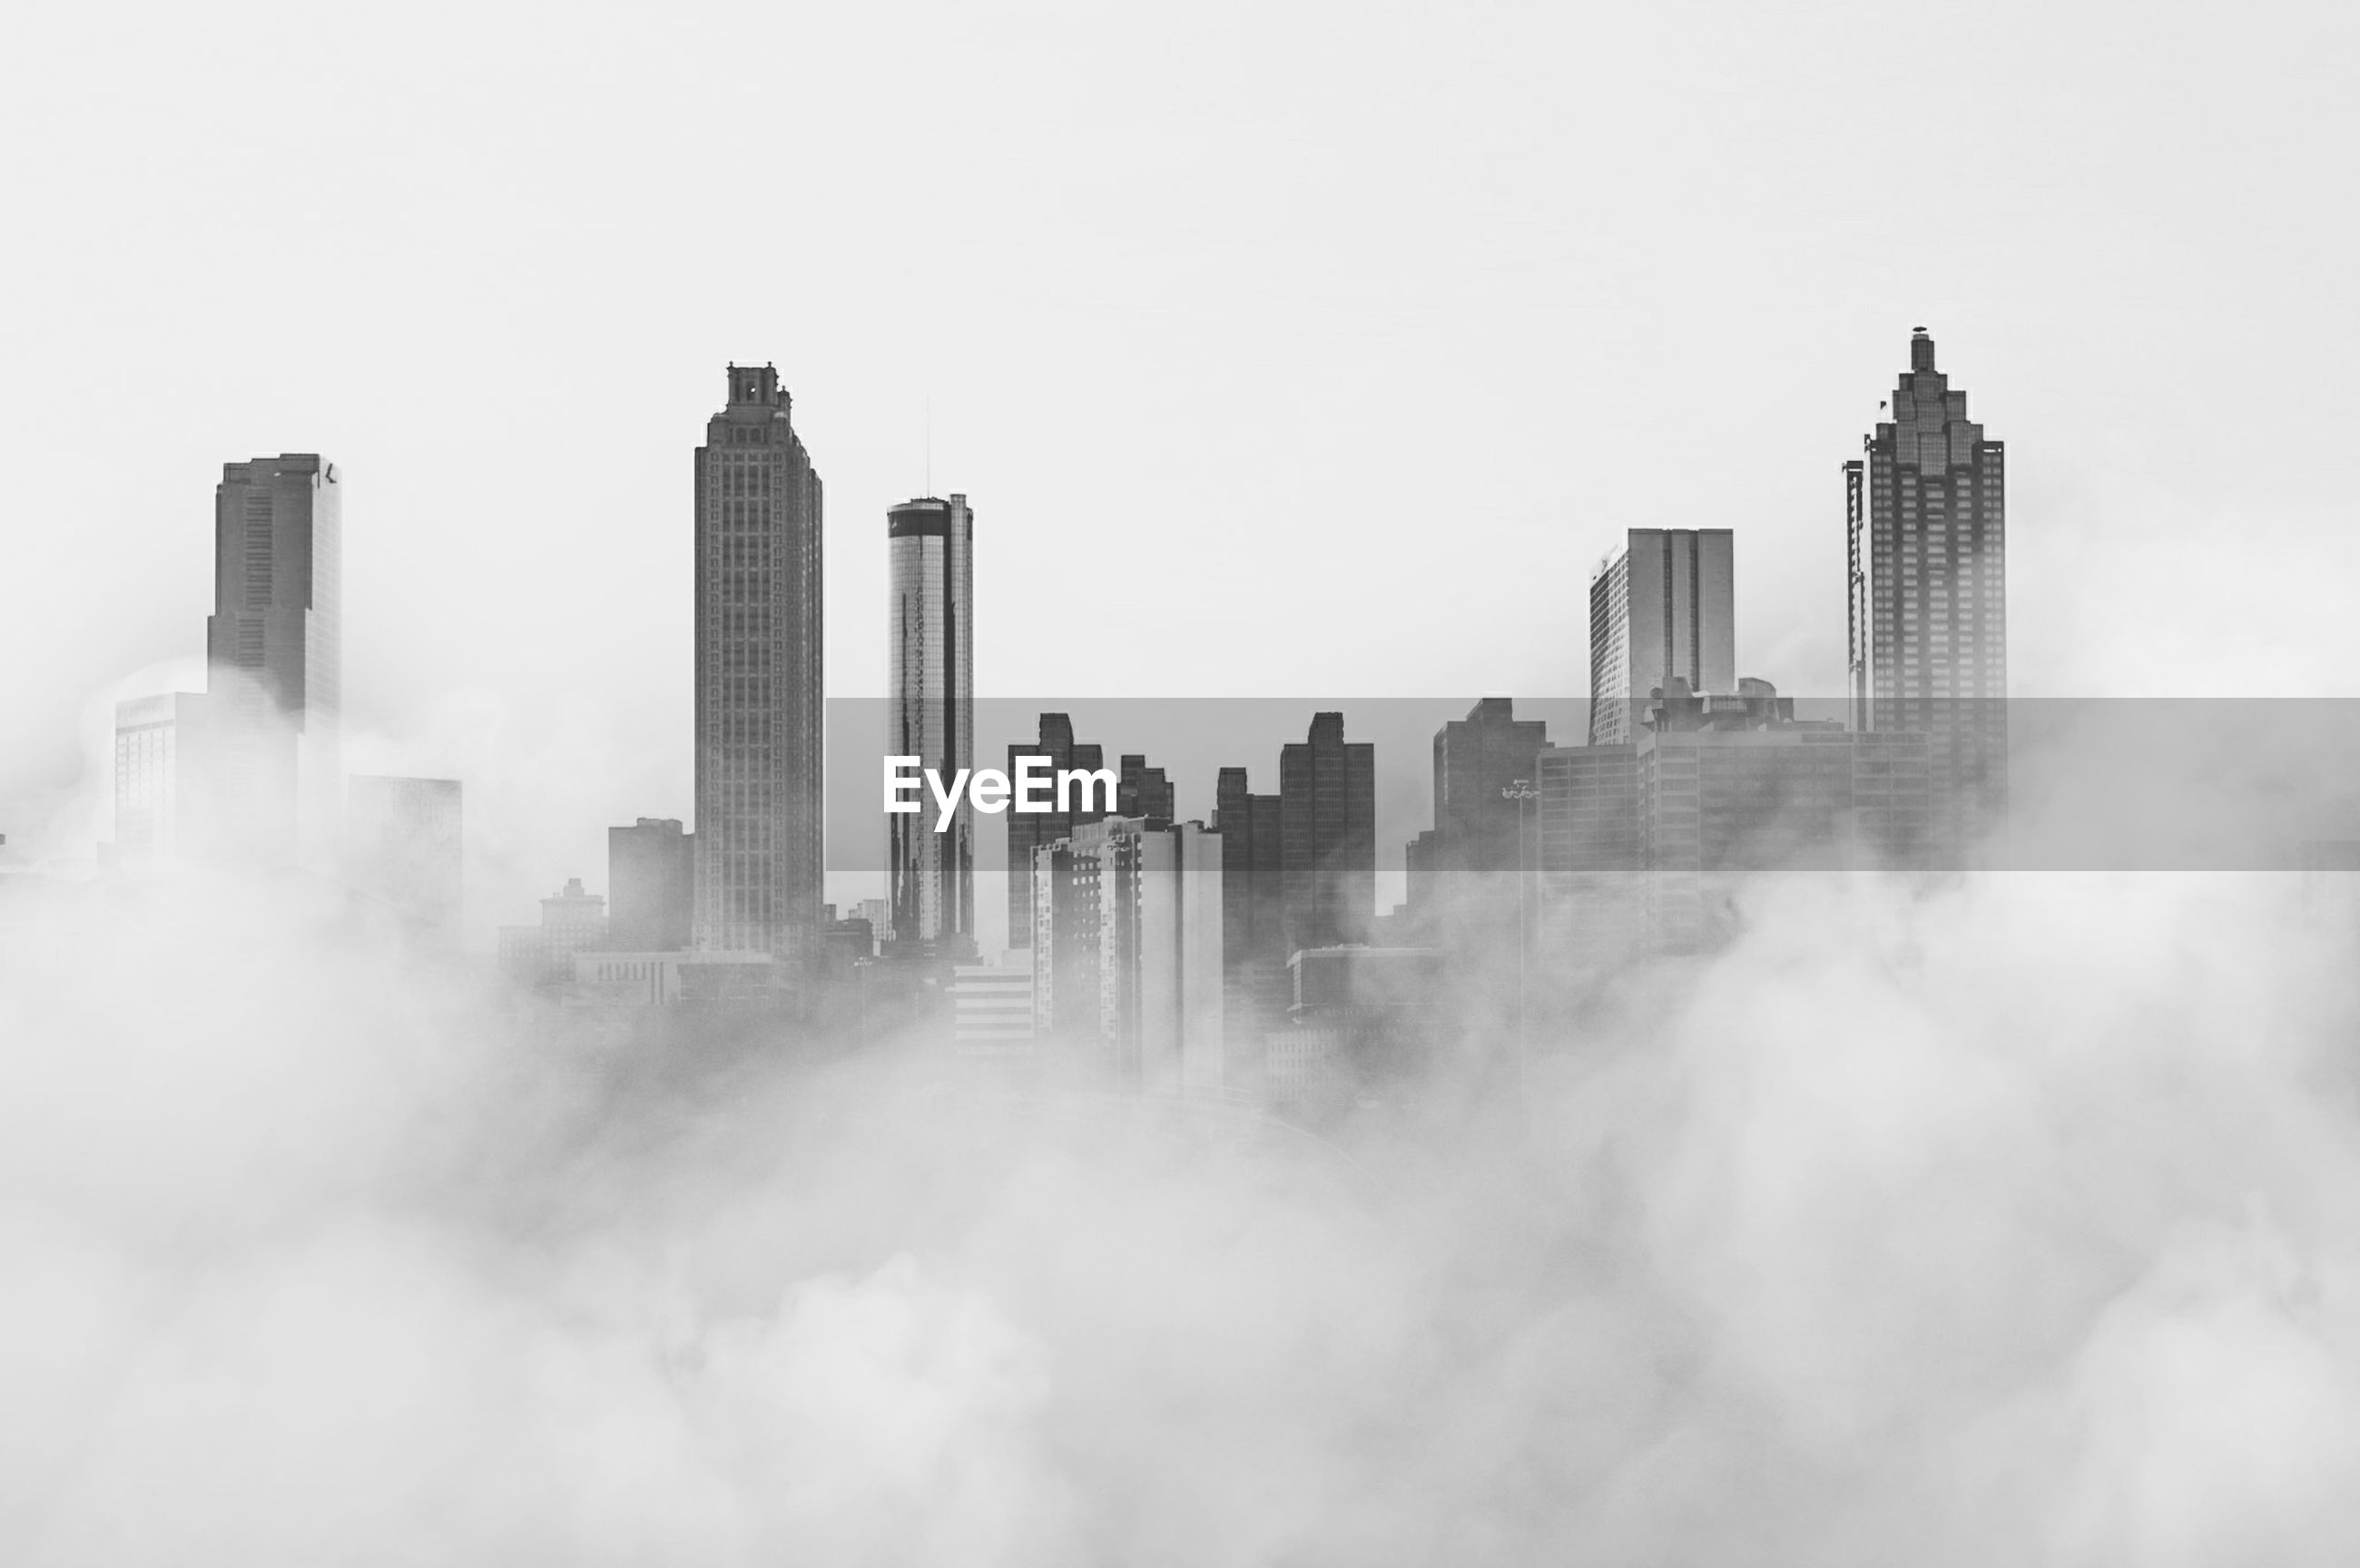 Smoke covering city against sky